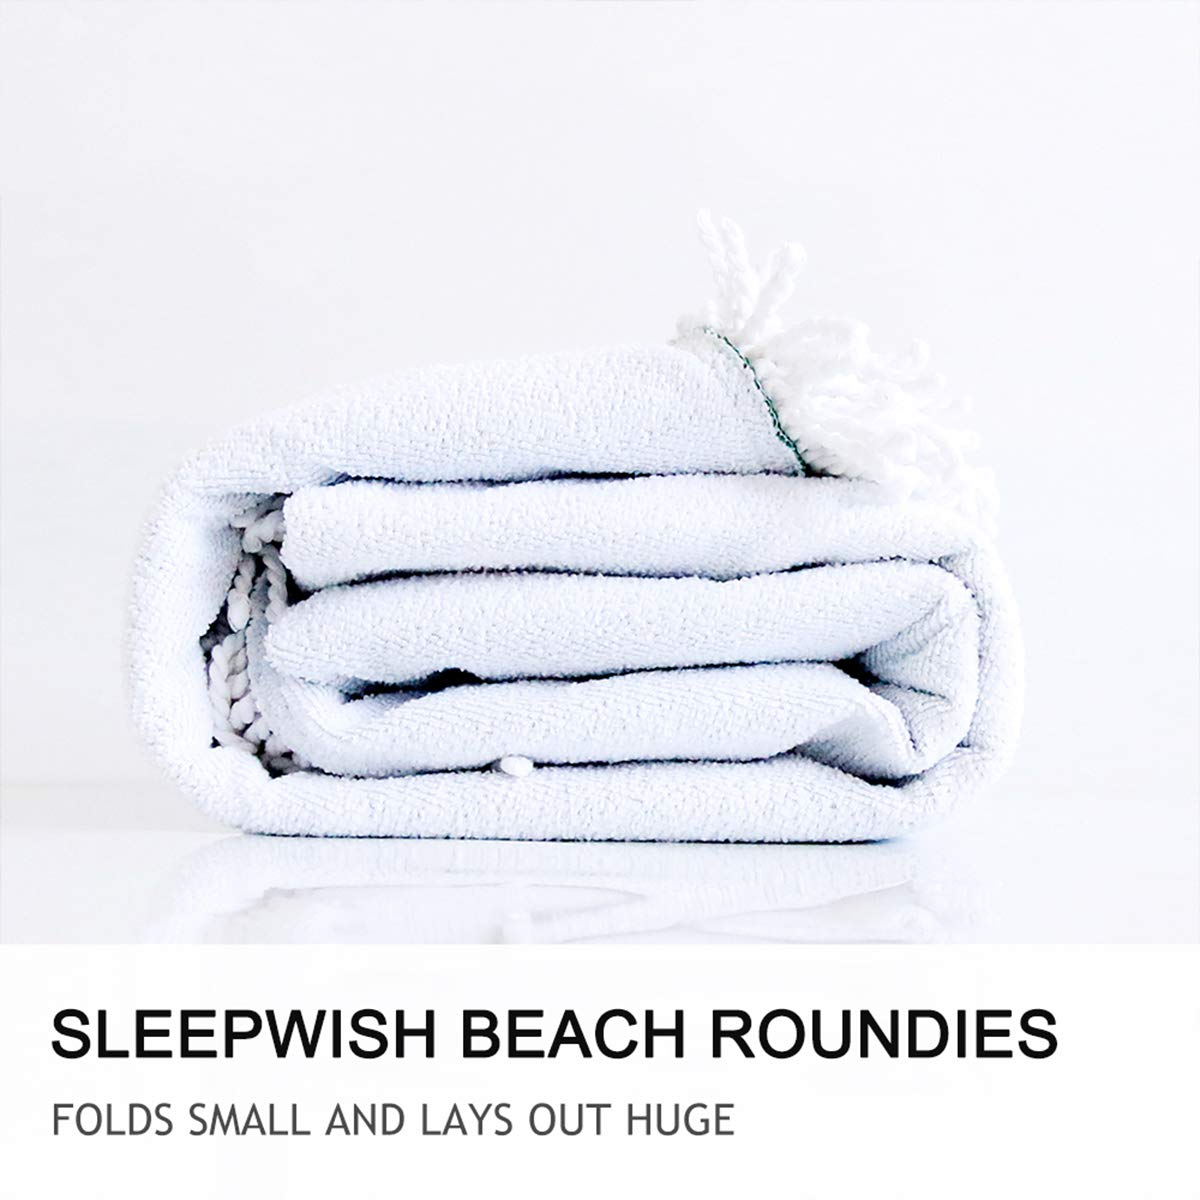 Sleepwish Floral Printed Round Beach Towel Ultra Soft Super Water Absorbent Multi-Purpose Classic Beach Throw 60 inch Colored Light Pattern